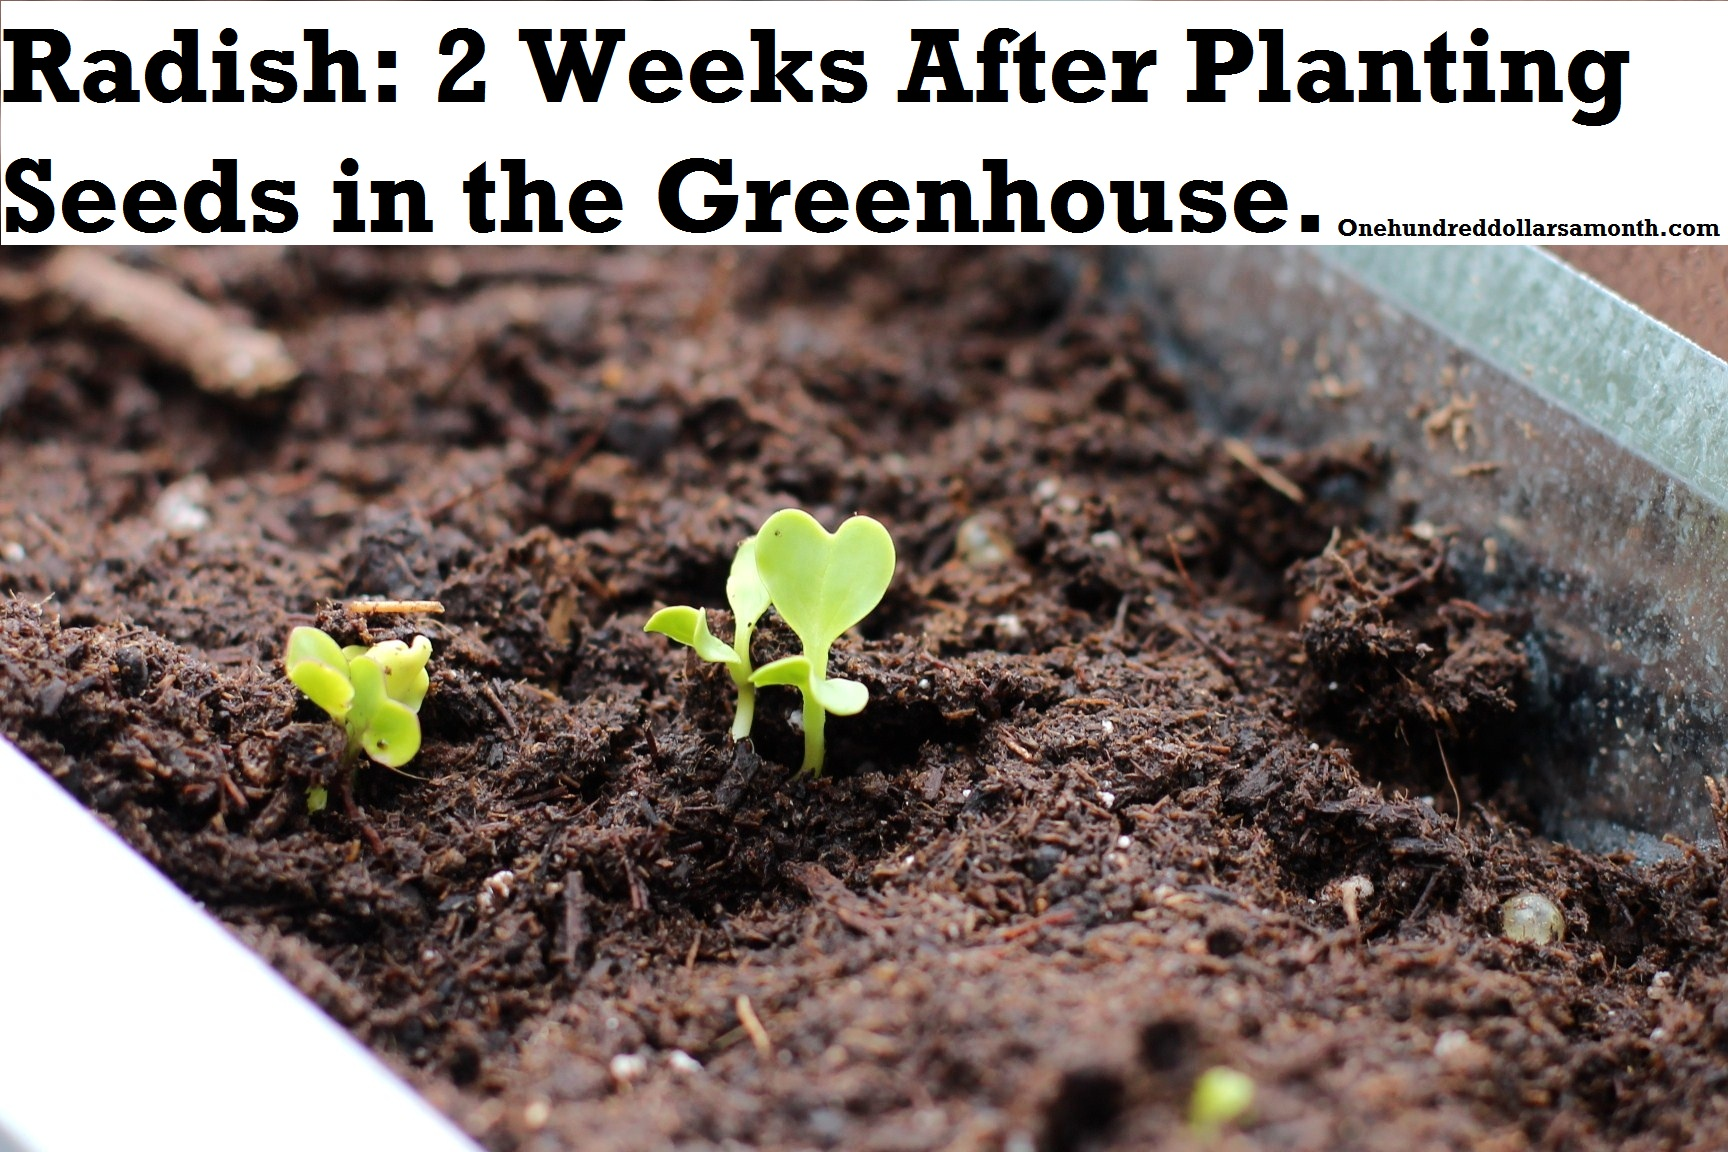 How to Grow Food in a Greenhouse: Update on Newly Planted Seeds